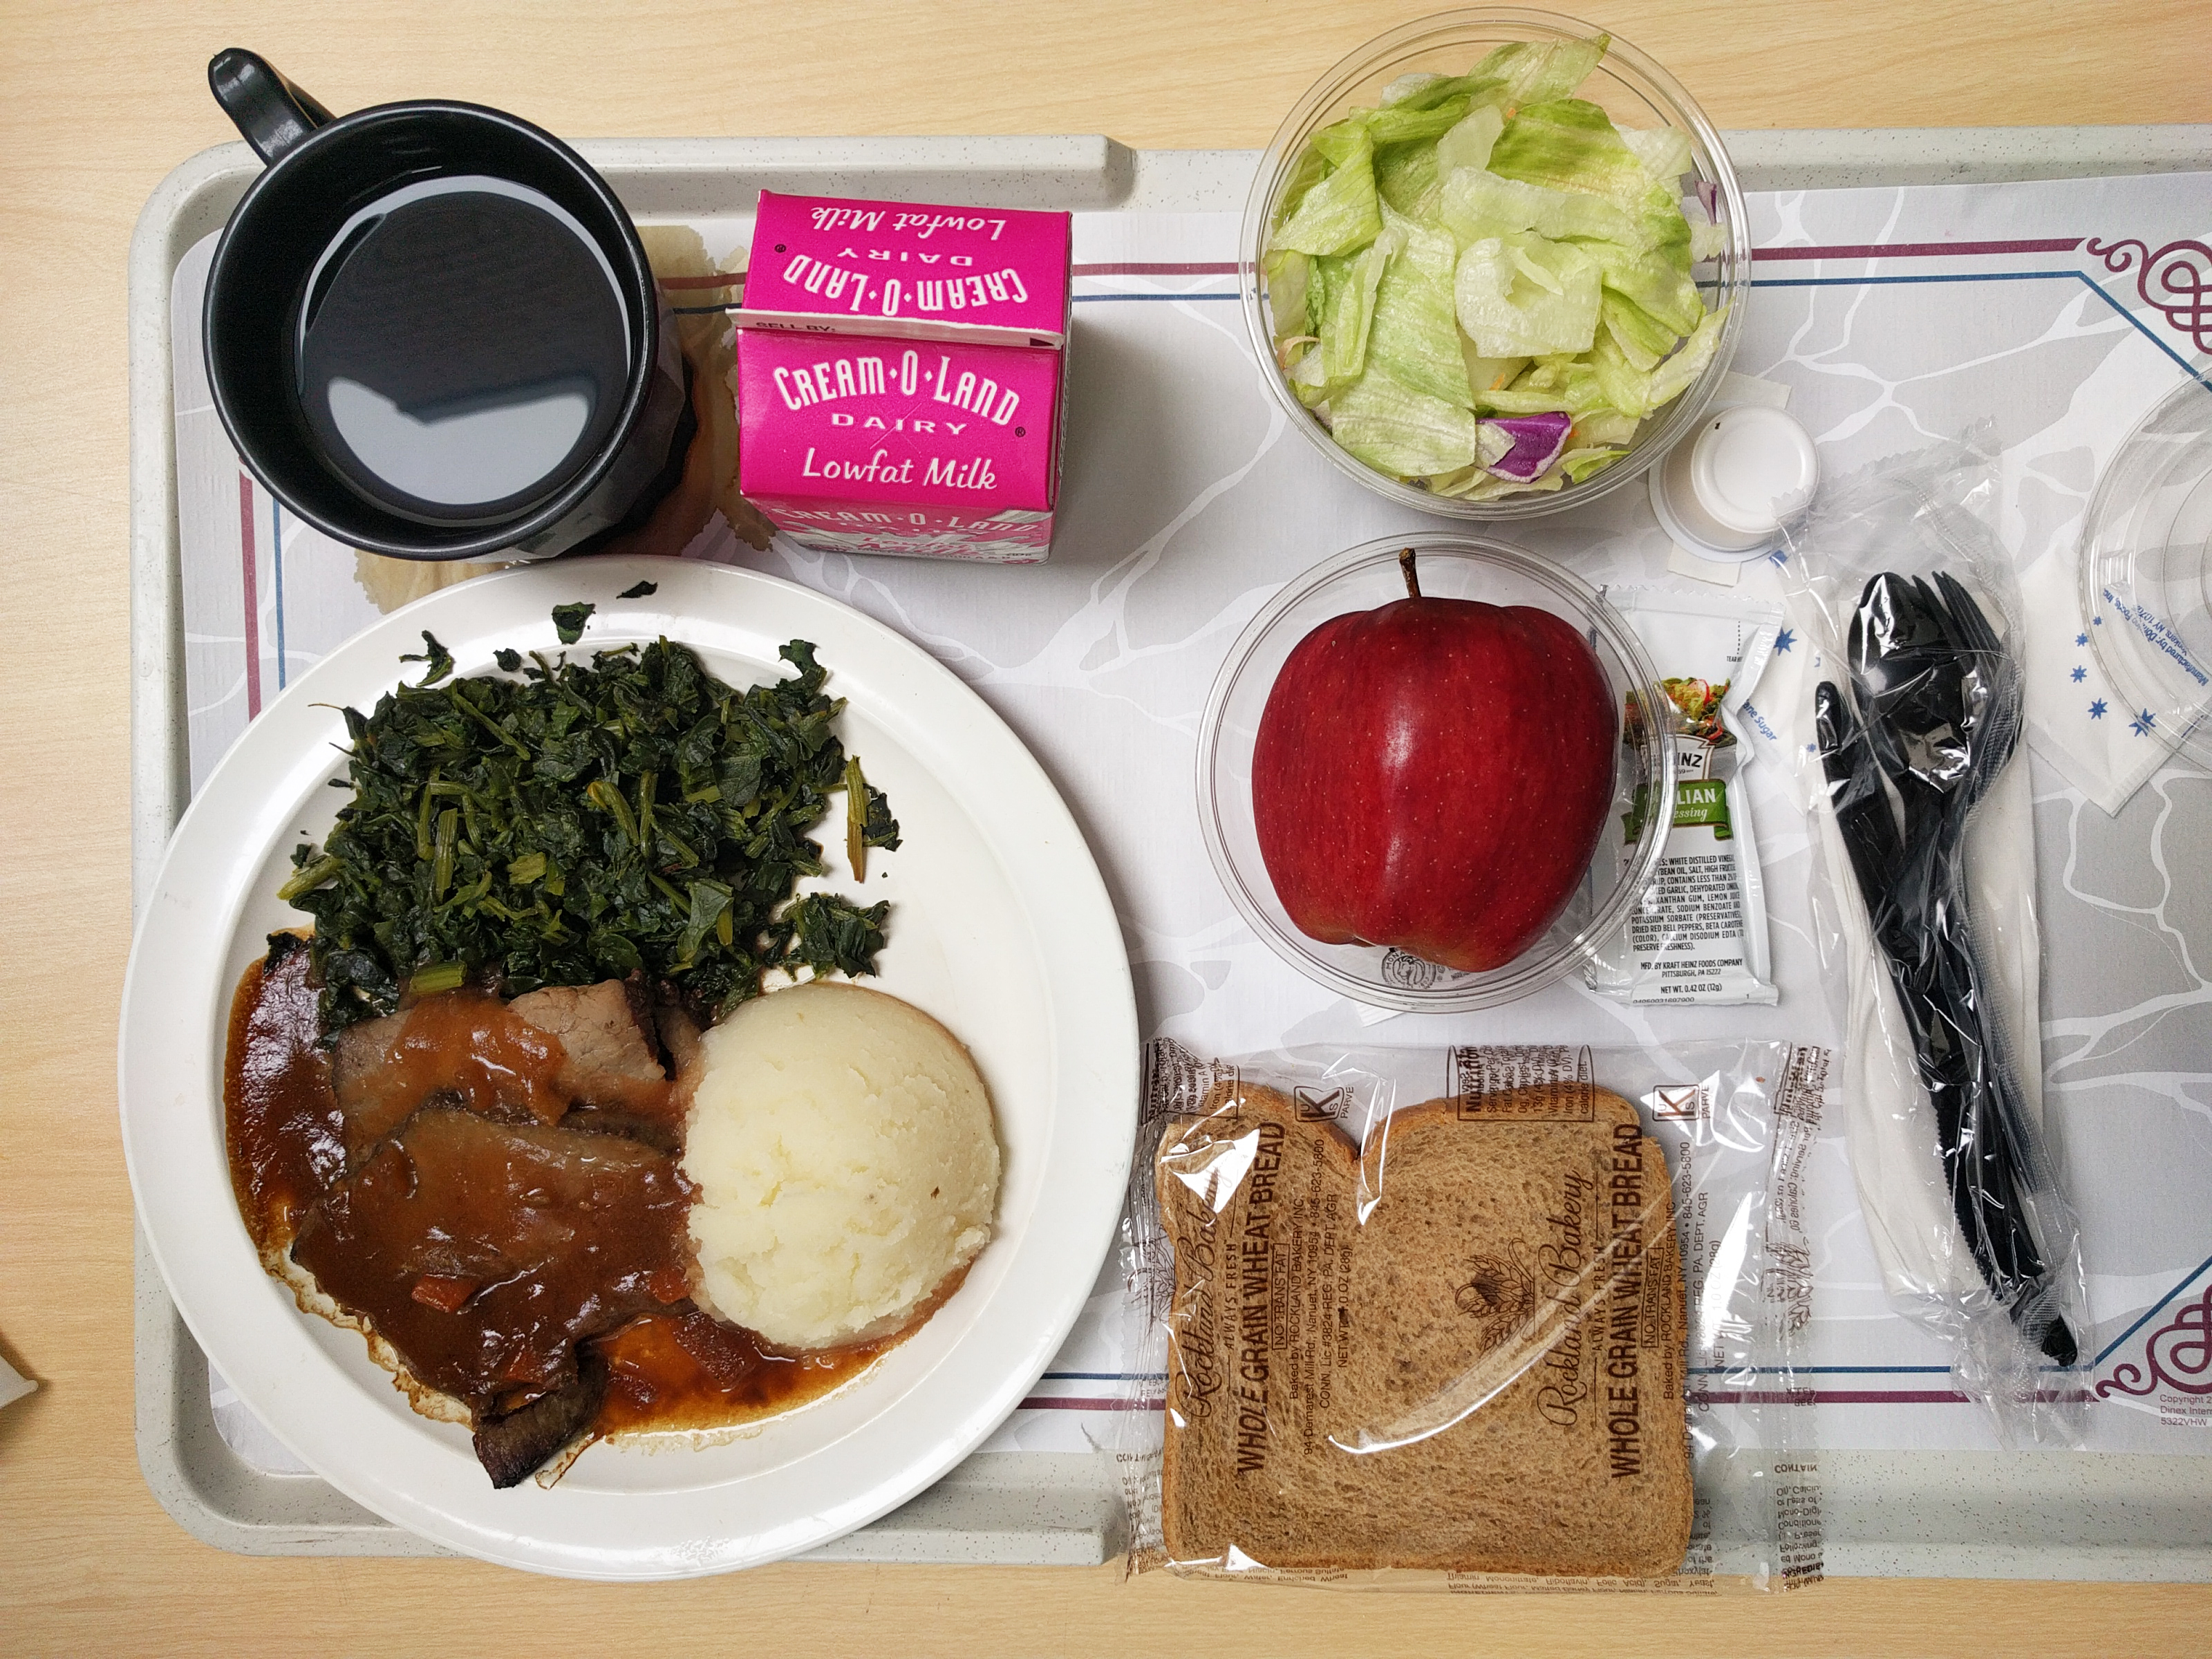 A plate of drab hospital food, including a plate of meet and potatoes, an apple, a carton of milk, a plastic-wrapped slice of whole wheat bread, and a plastic cup of coffee